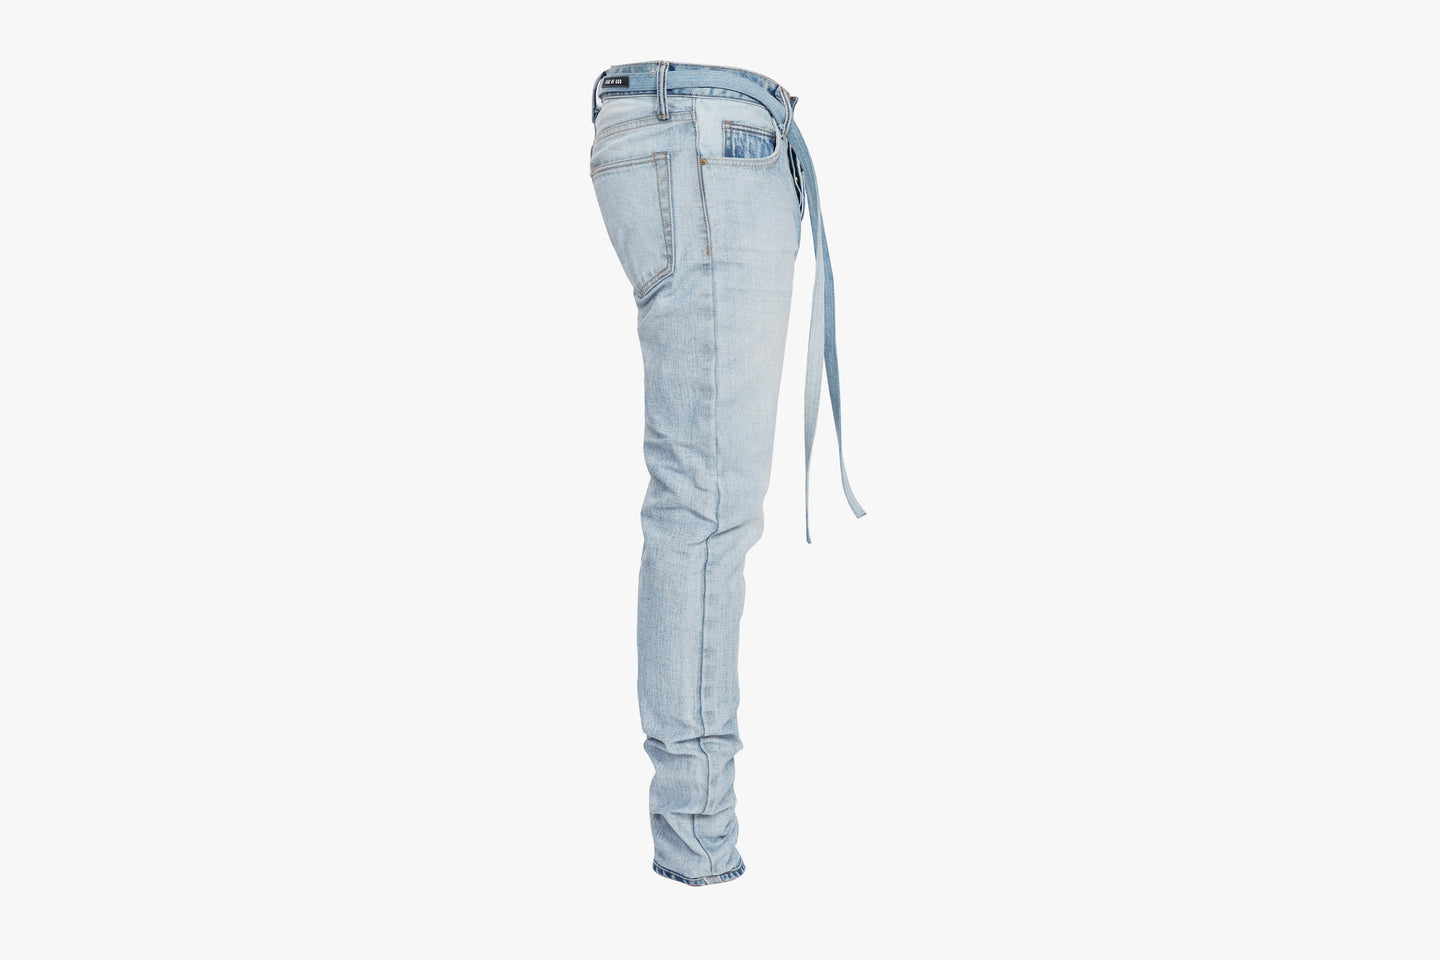 Inside Out Slim Jean - Inside Out Slim Jean